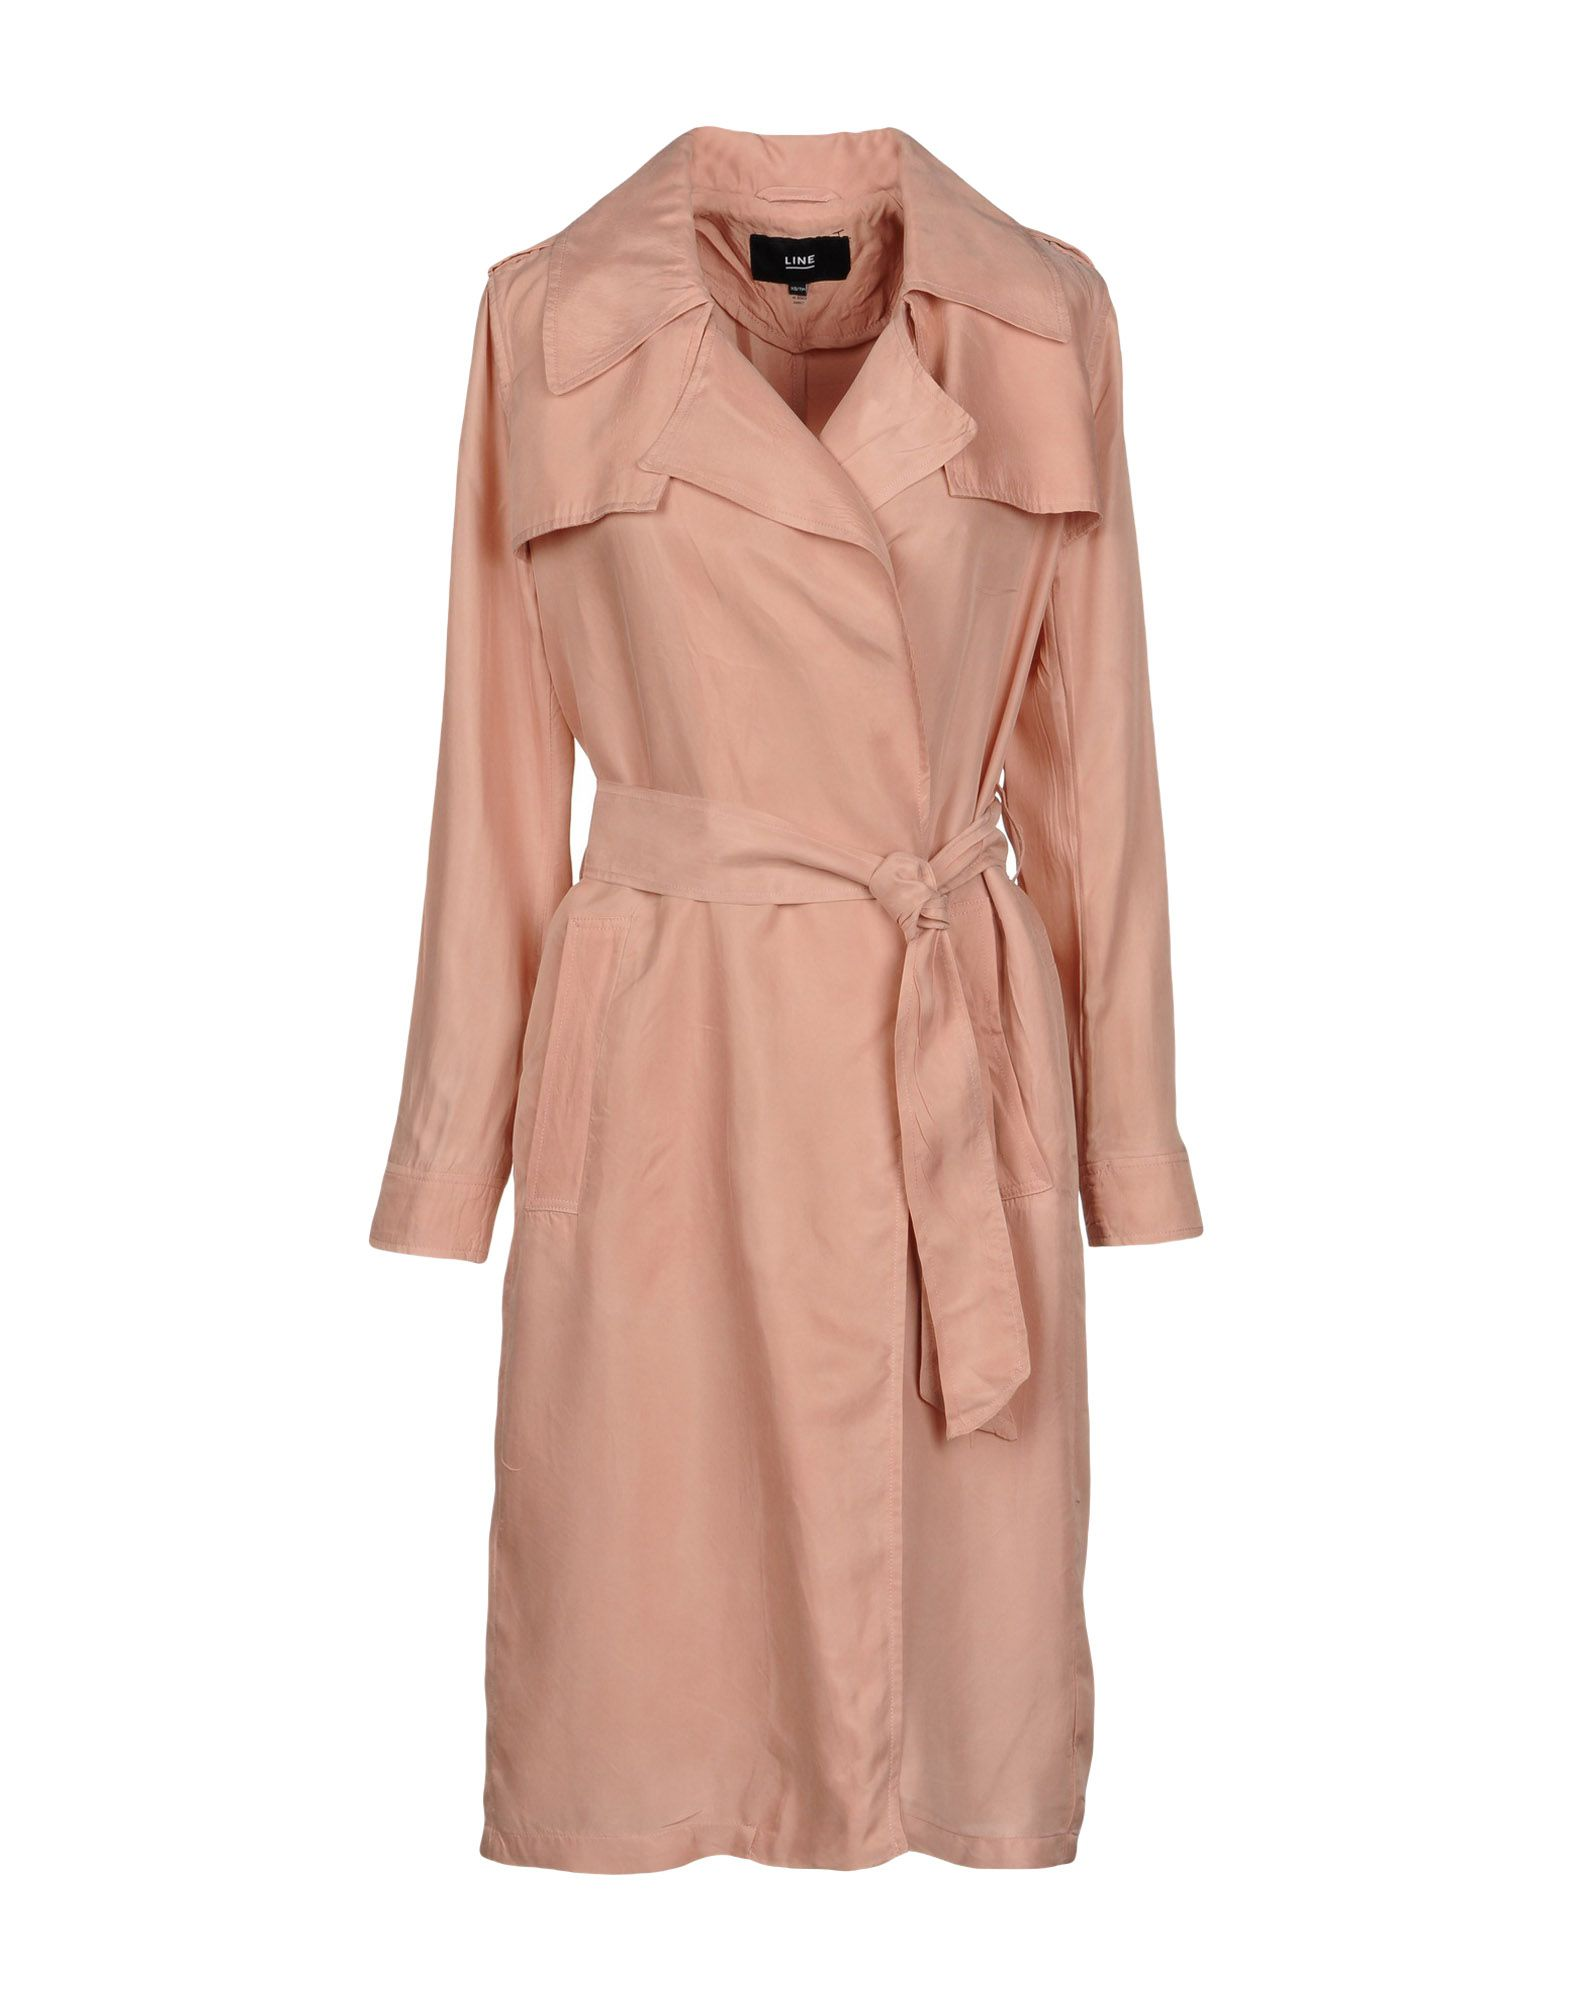 LINE Full-Length Jacket in Pale Pink